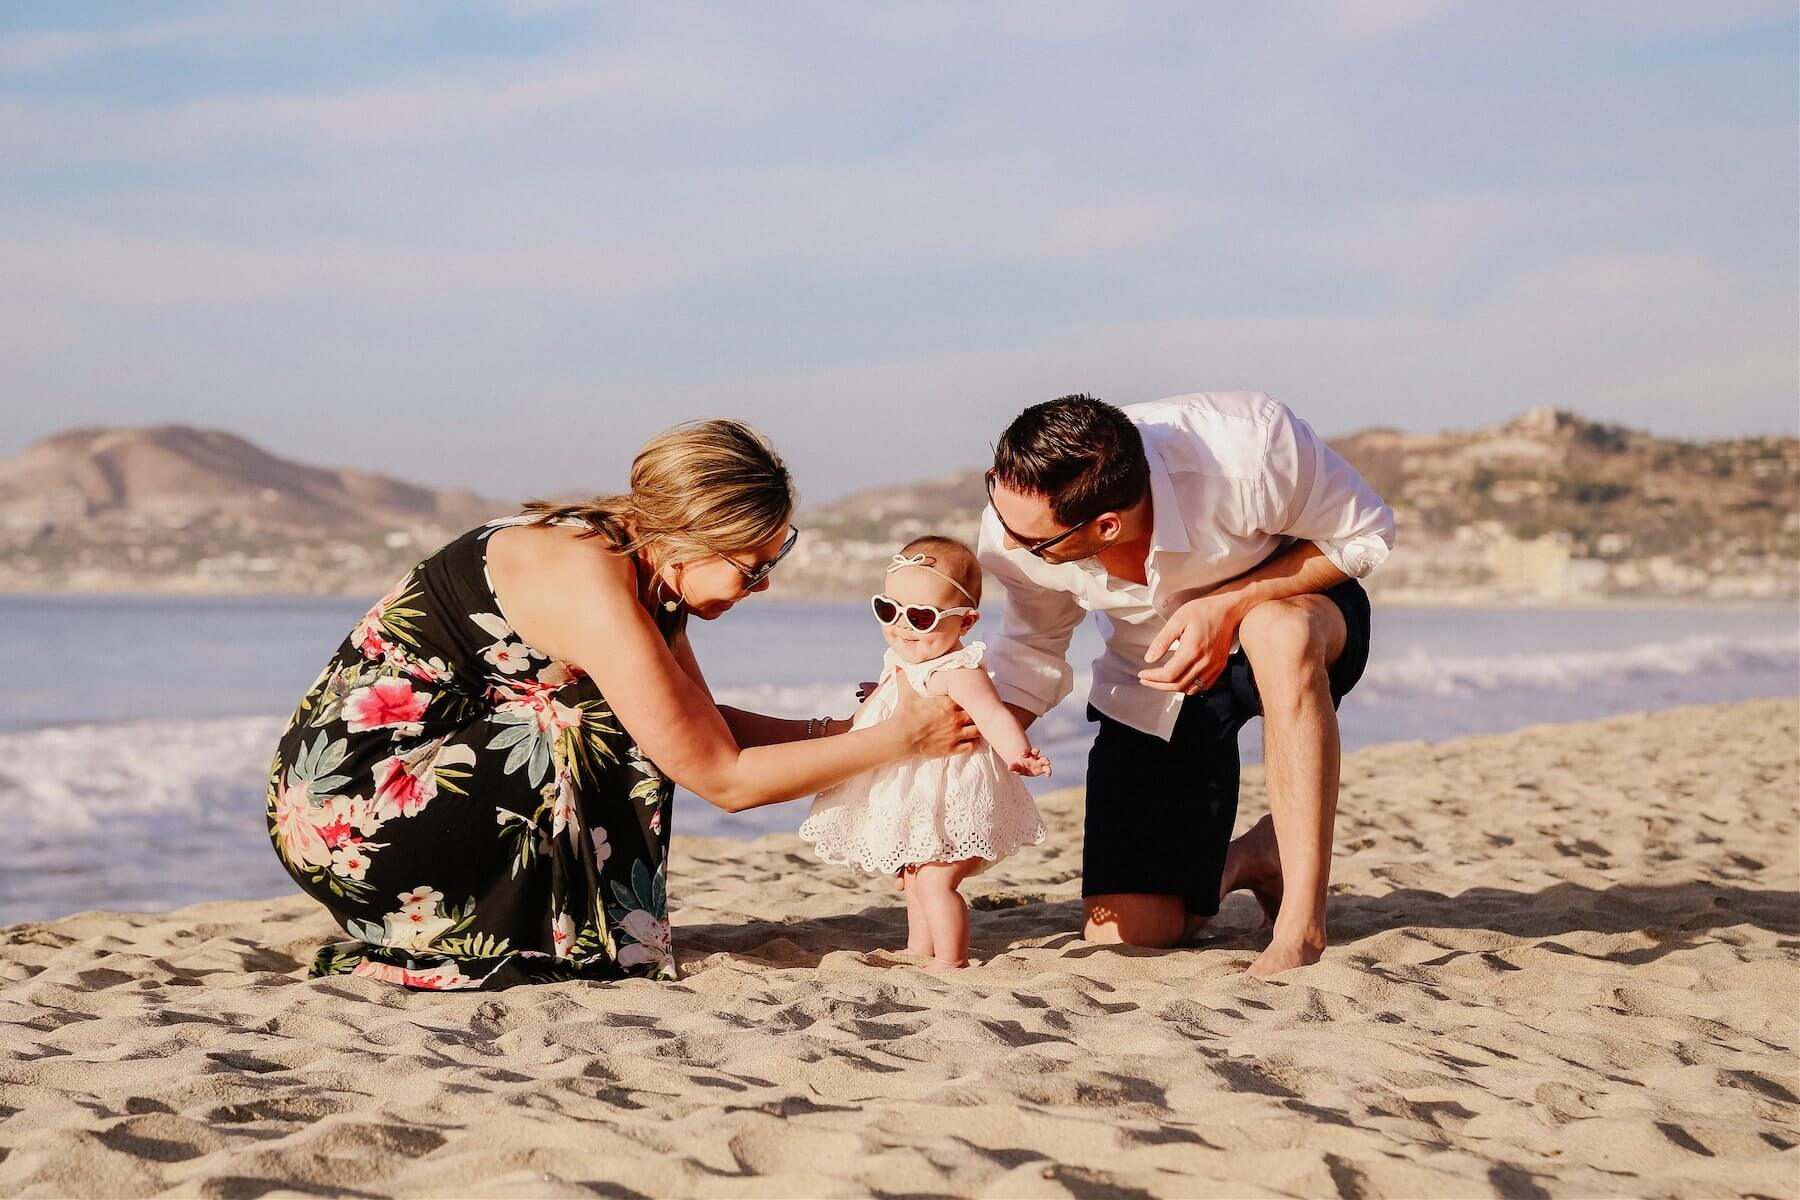 family of three, the baby is wearing sunglasses and sitting on the beach in Cabo San Lucas, Mexico